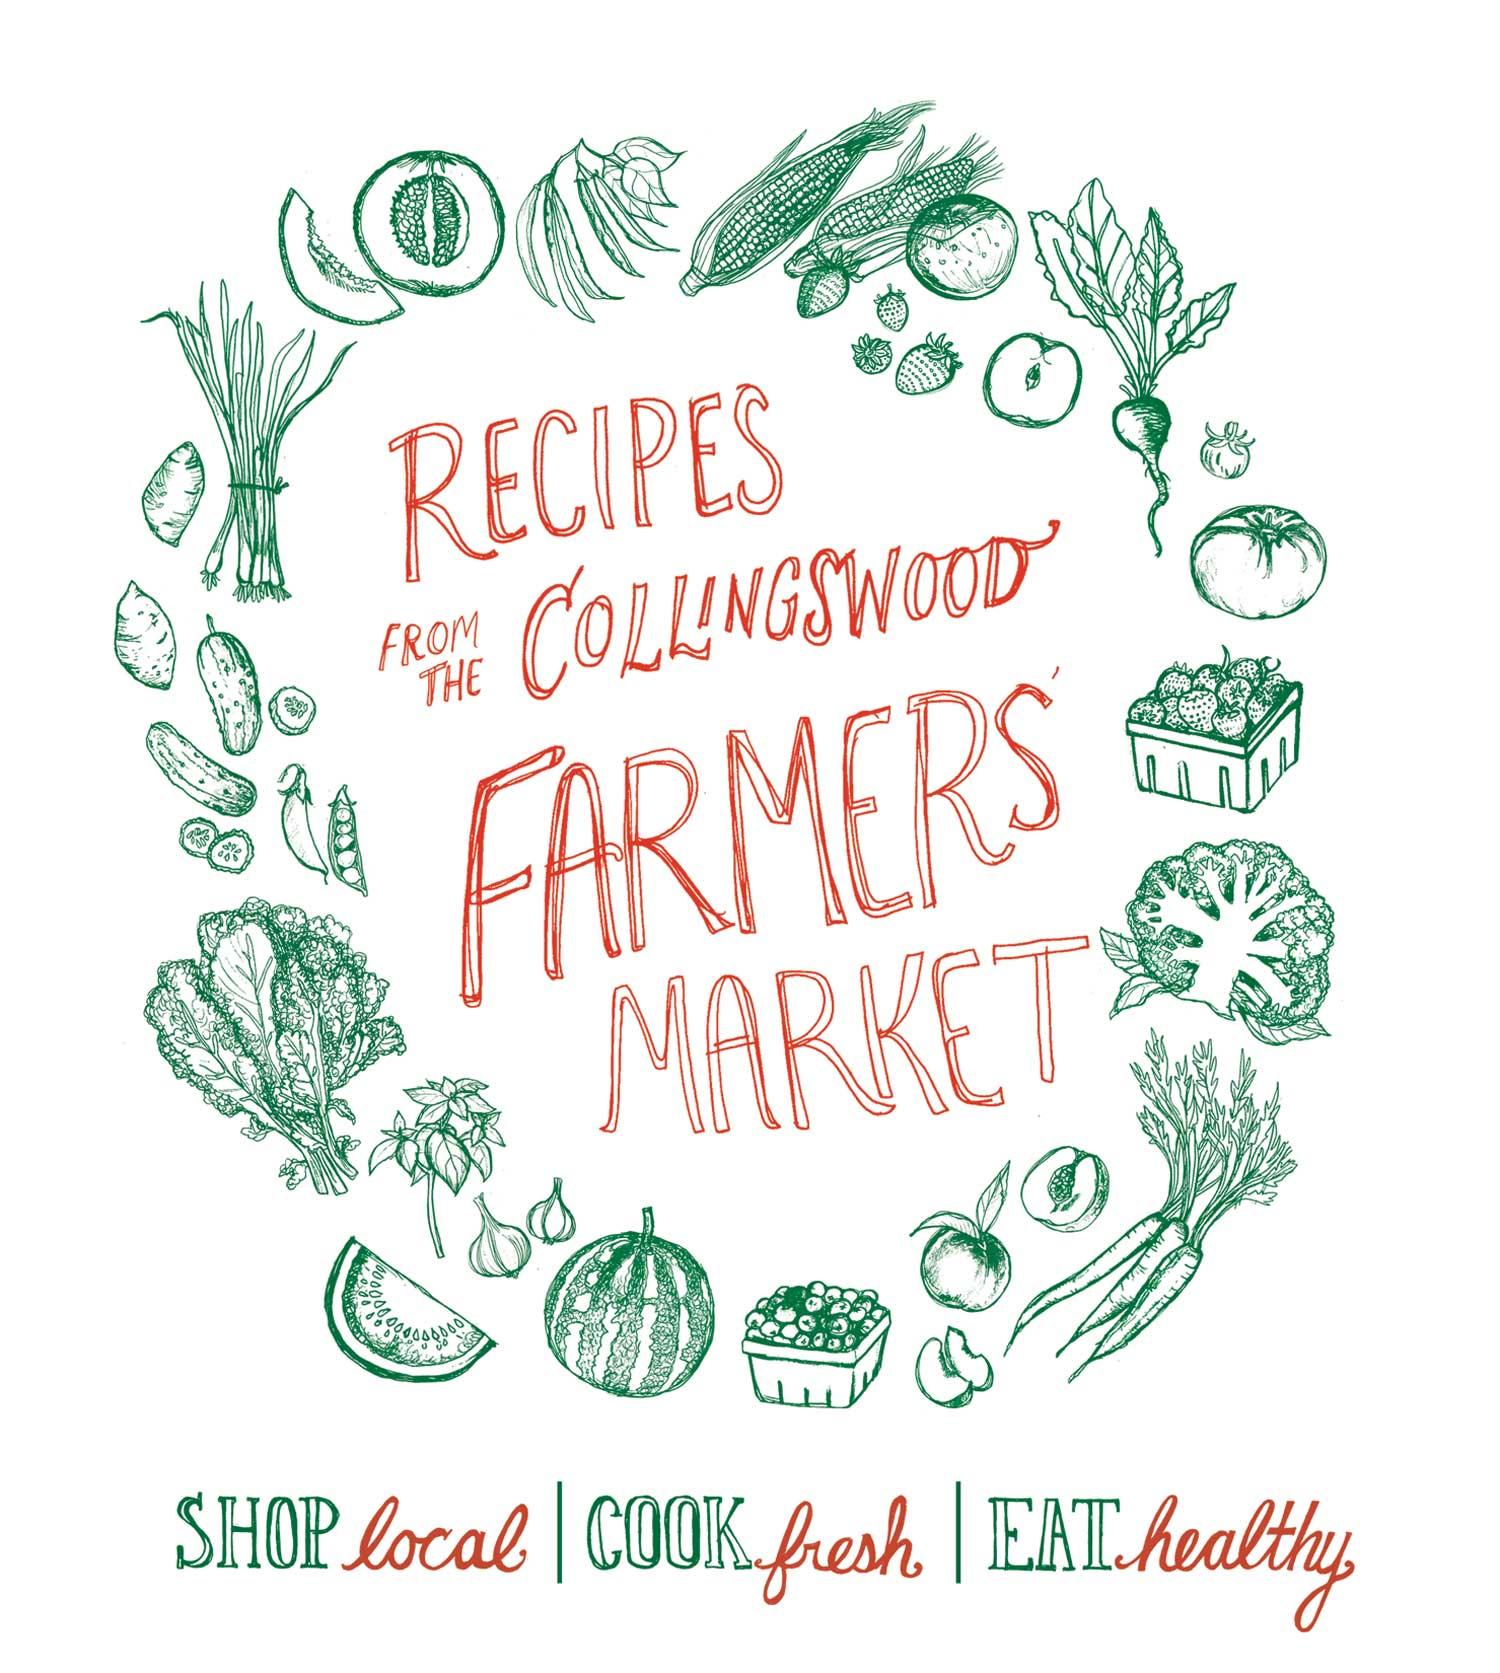 Collingswood Recipes